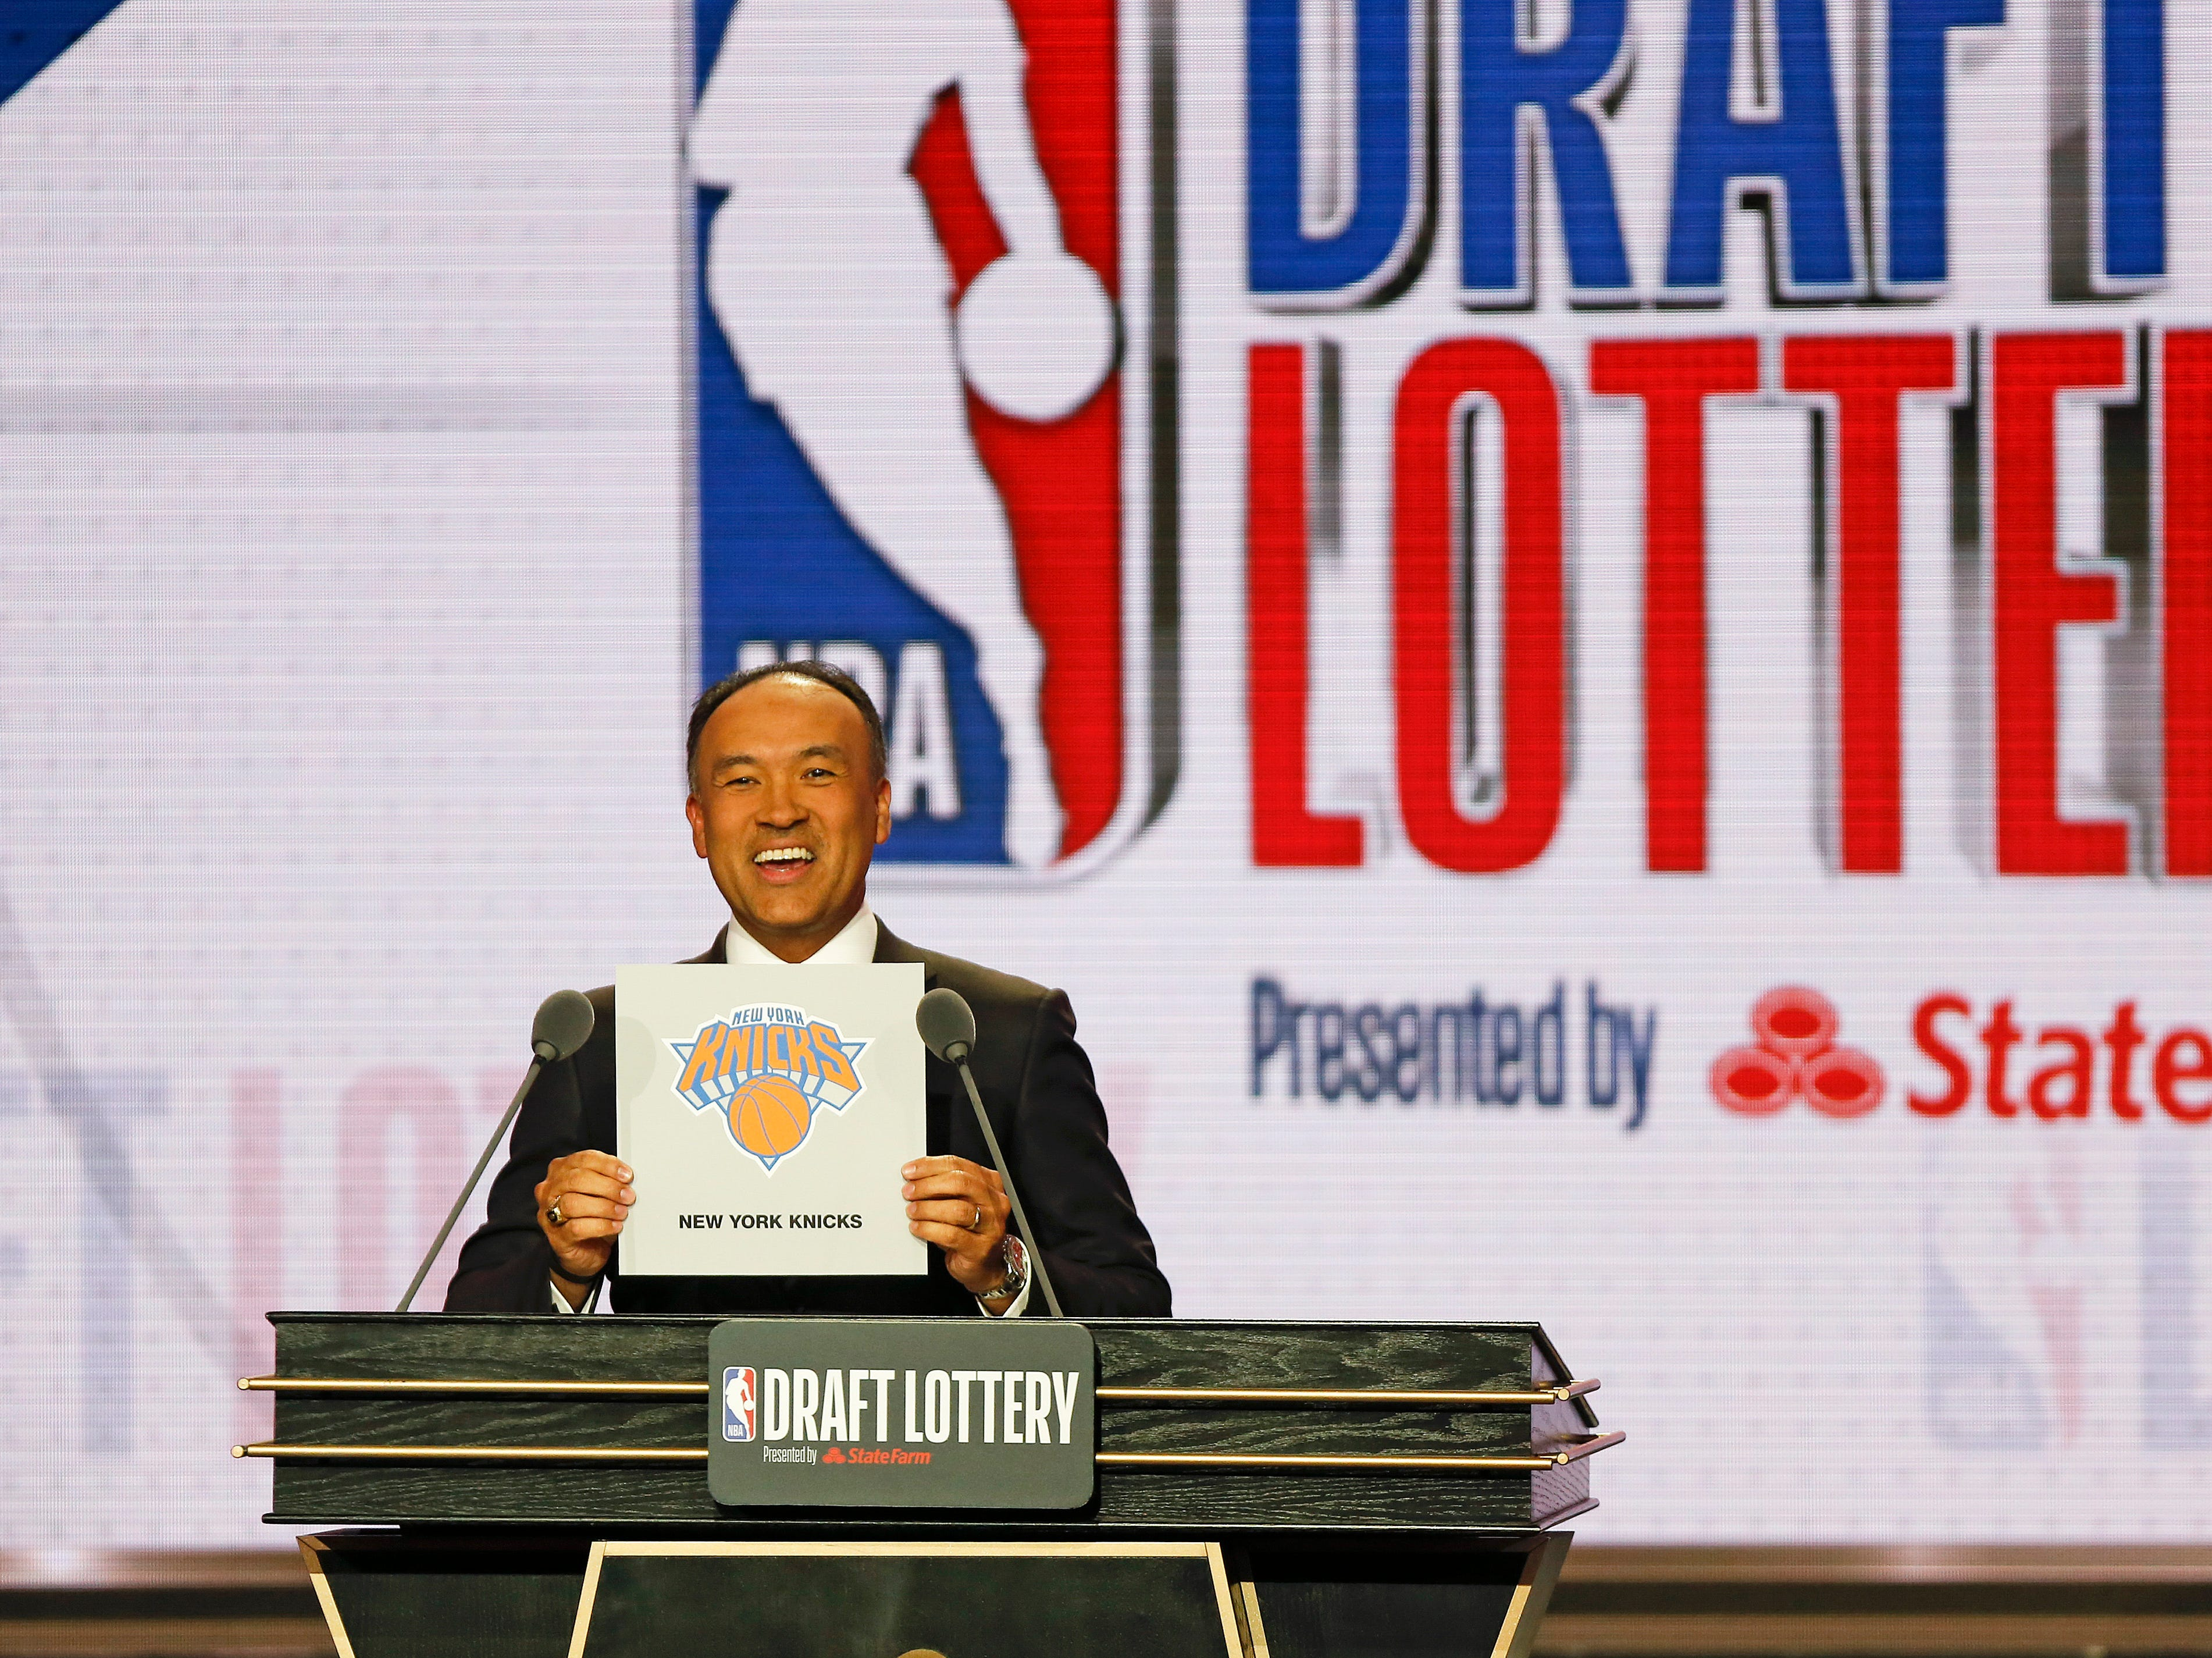 NBA Deputy Commissioner Mark Tatum announces that the New York Knicks had won the third pick during the NBA basketball draft lottery Tuesday, May 14, 2019, in Chicago. (AP Photo/Nuccio DiNuzzo)